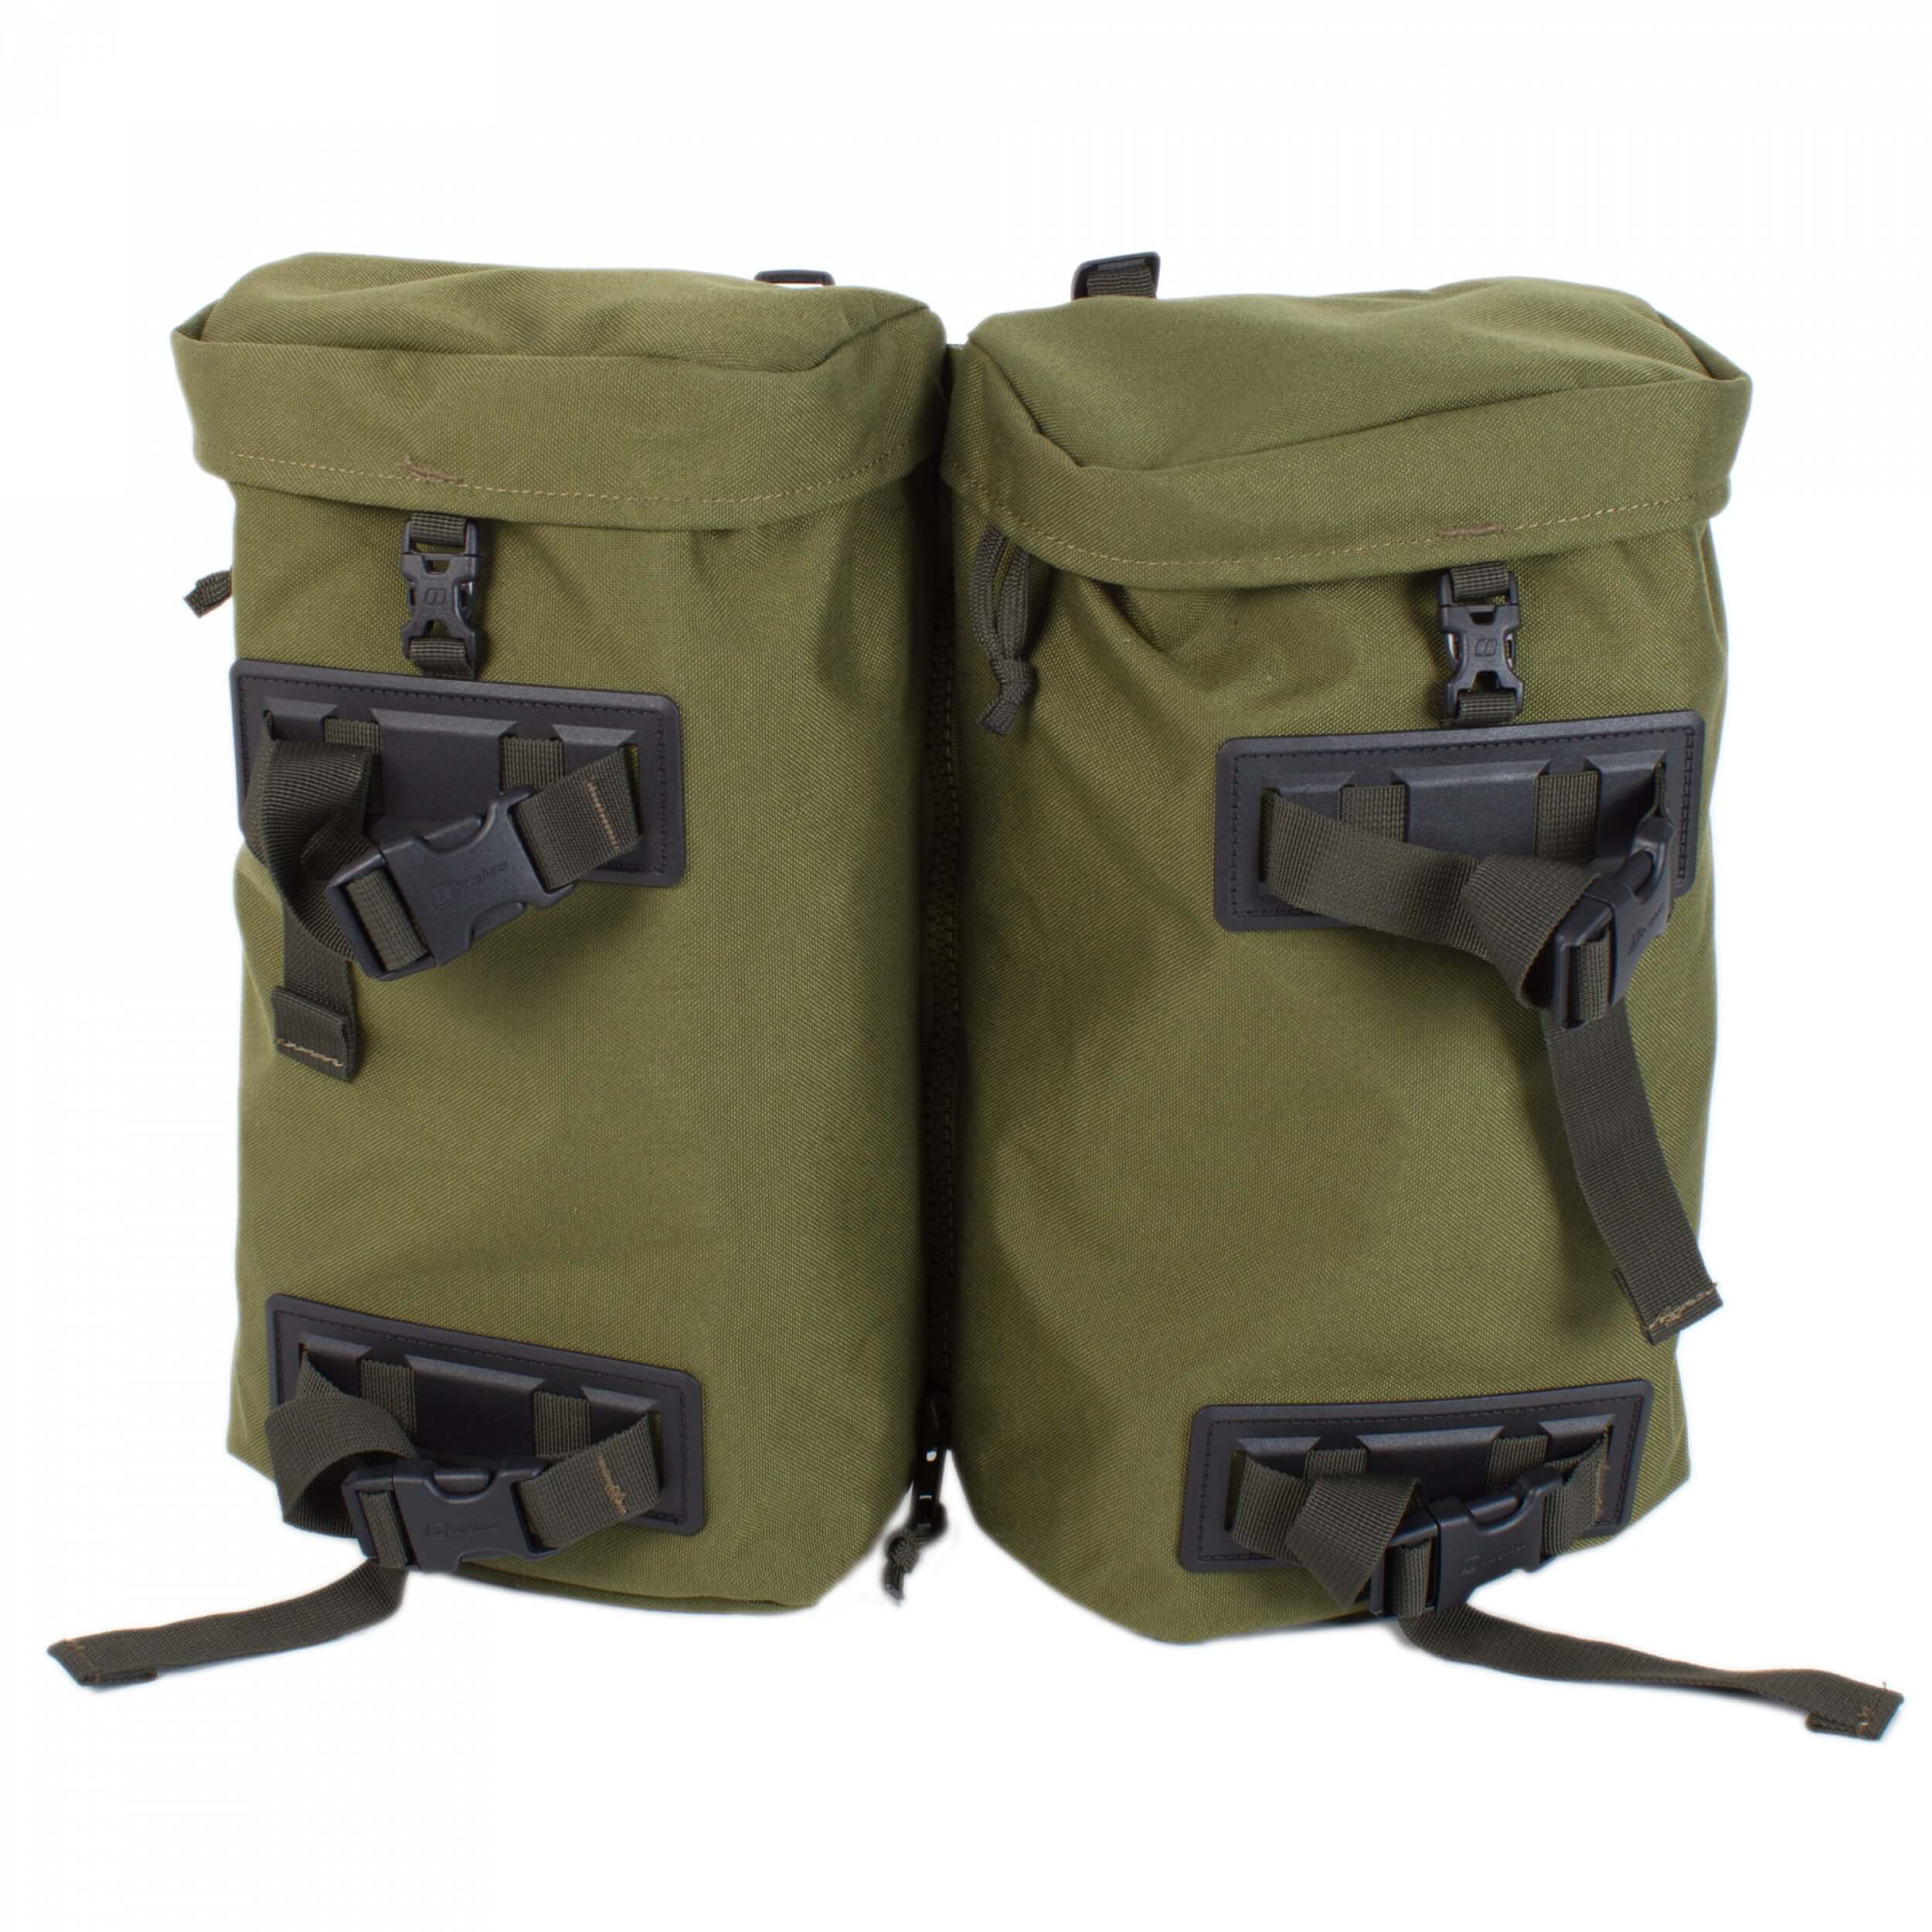 berghaus mmps centurio 30 ii oliv frontloader mmps seitentaschen rucksack ebay. Black Bedroom Furniture Sets. Home Design Ideas